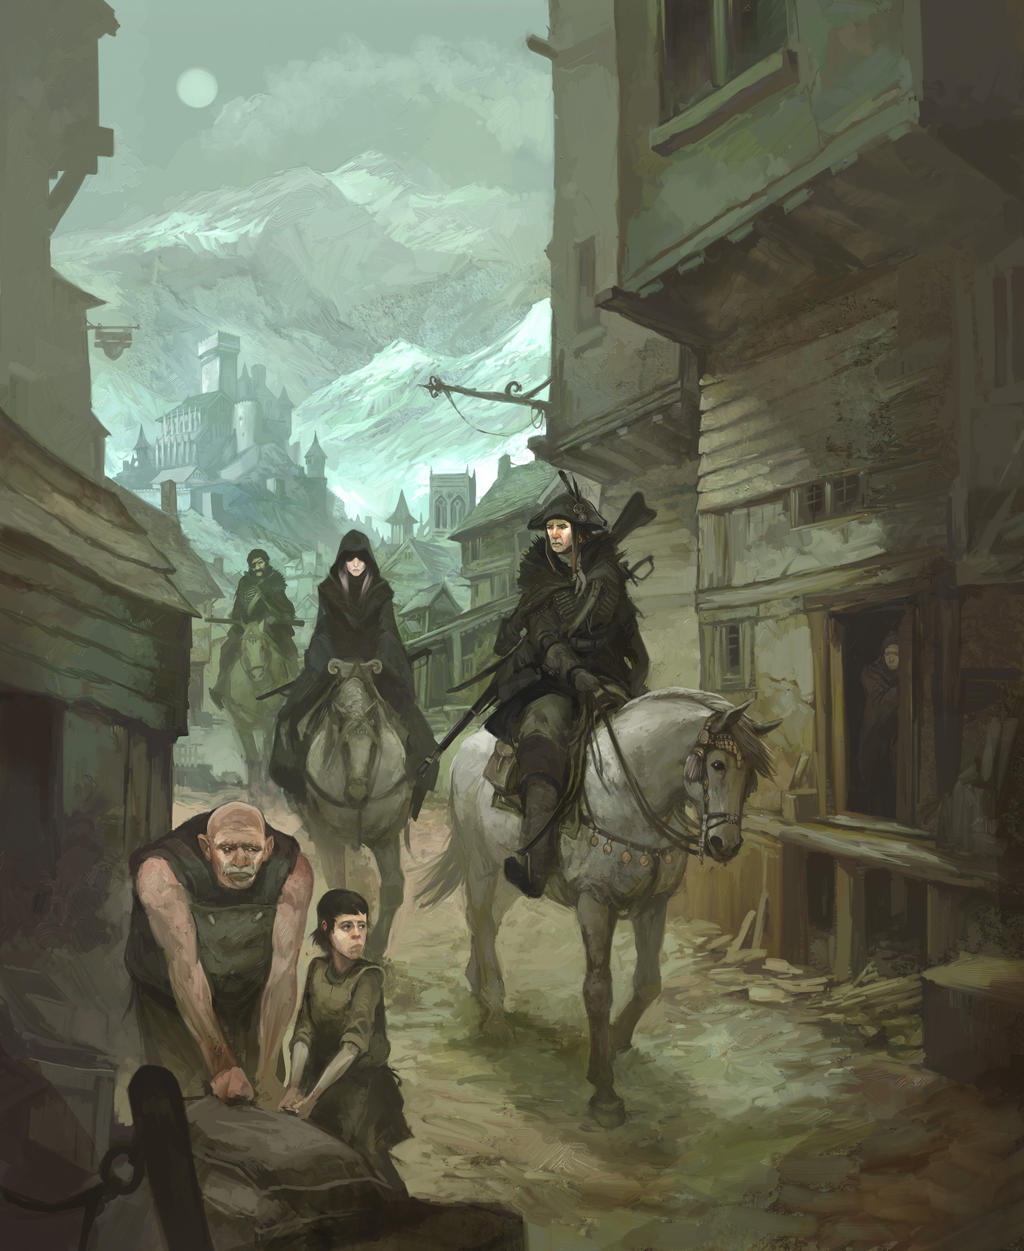 Untitled 10 - The Adventurers?